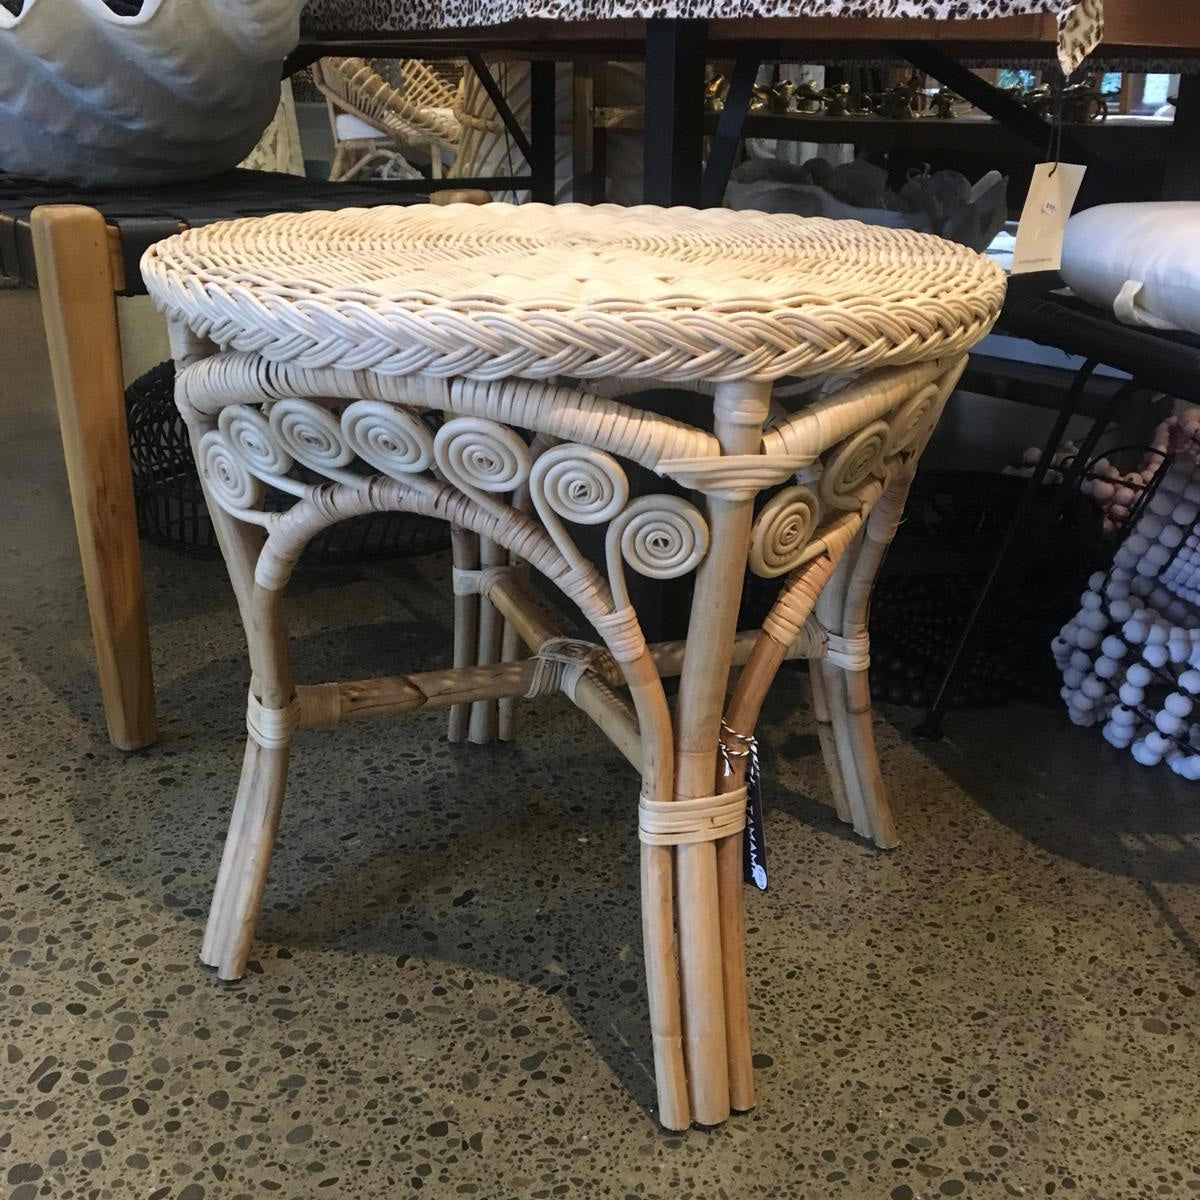 Peacock rattan side table